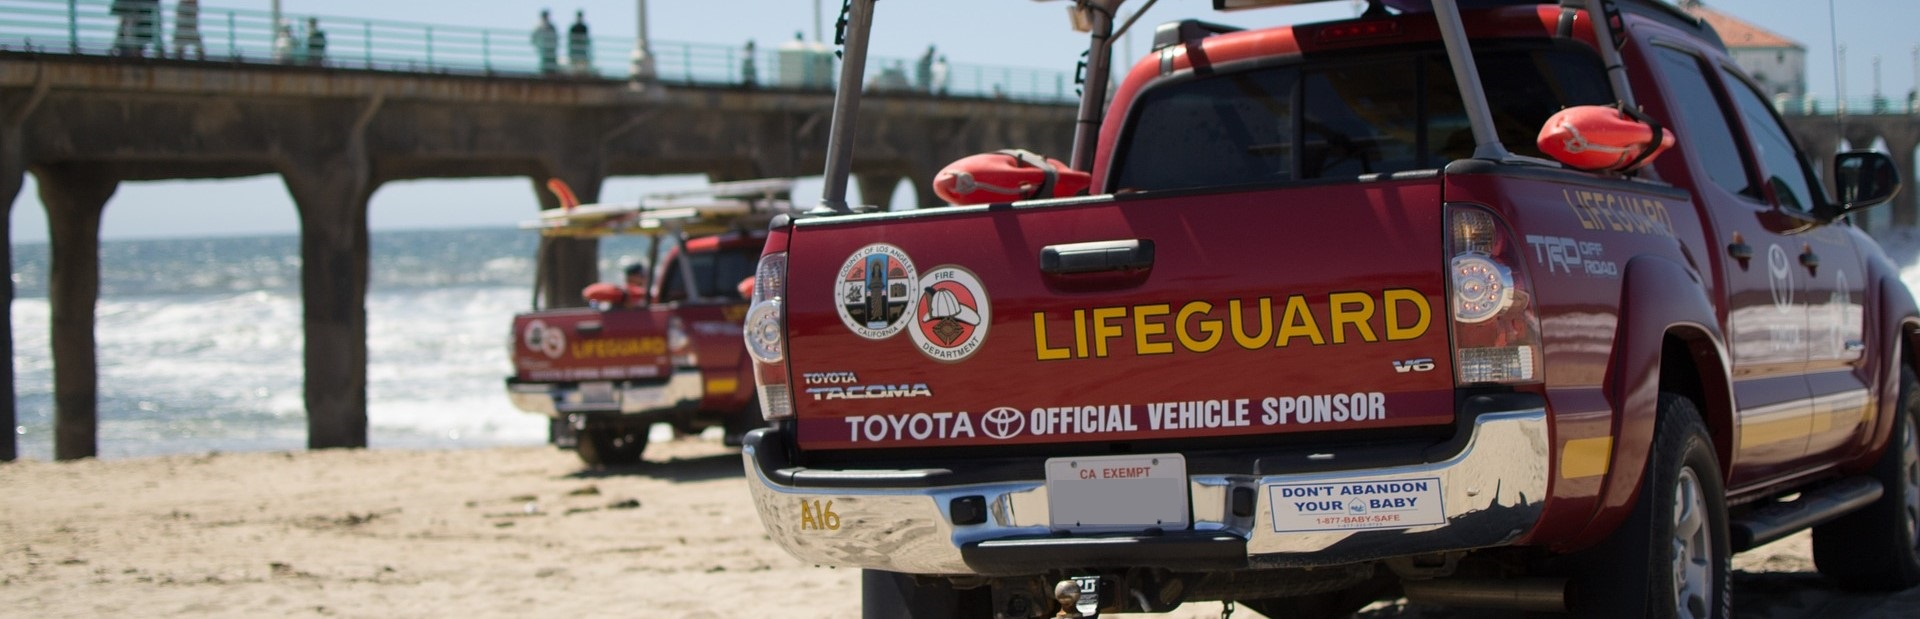 Lifeguard Truck in Manhattan Beach, California | Breast Cancer Car Donations